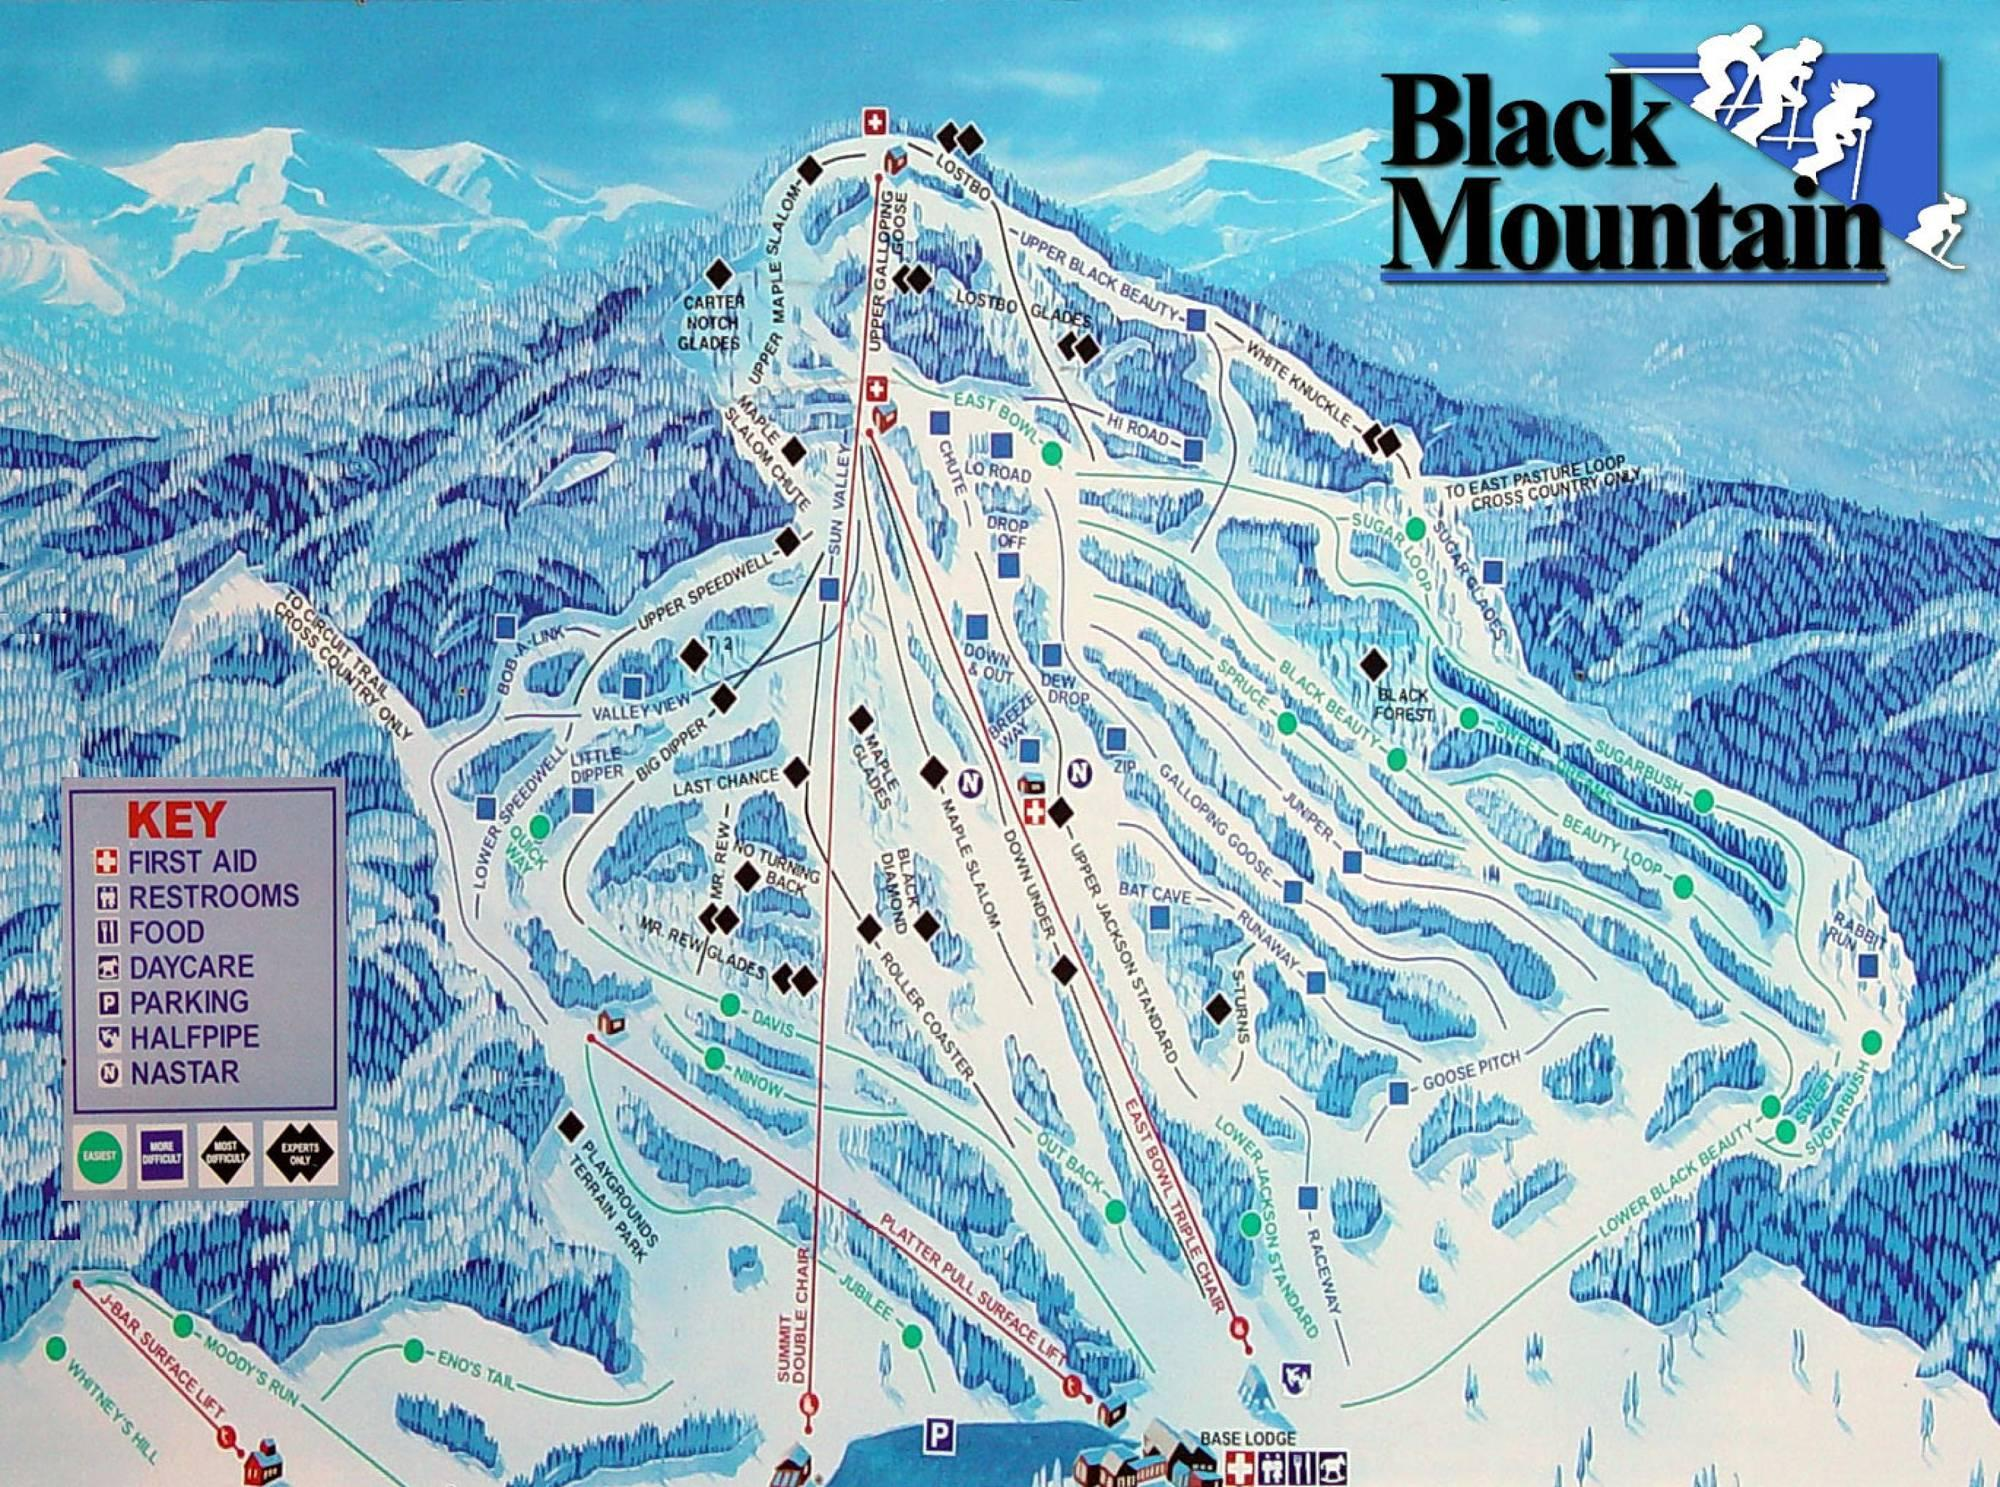 Black Mountain – Jackson